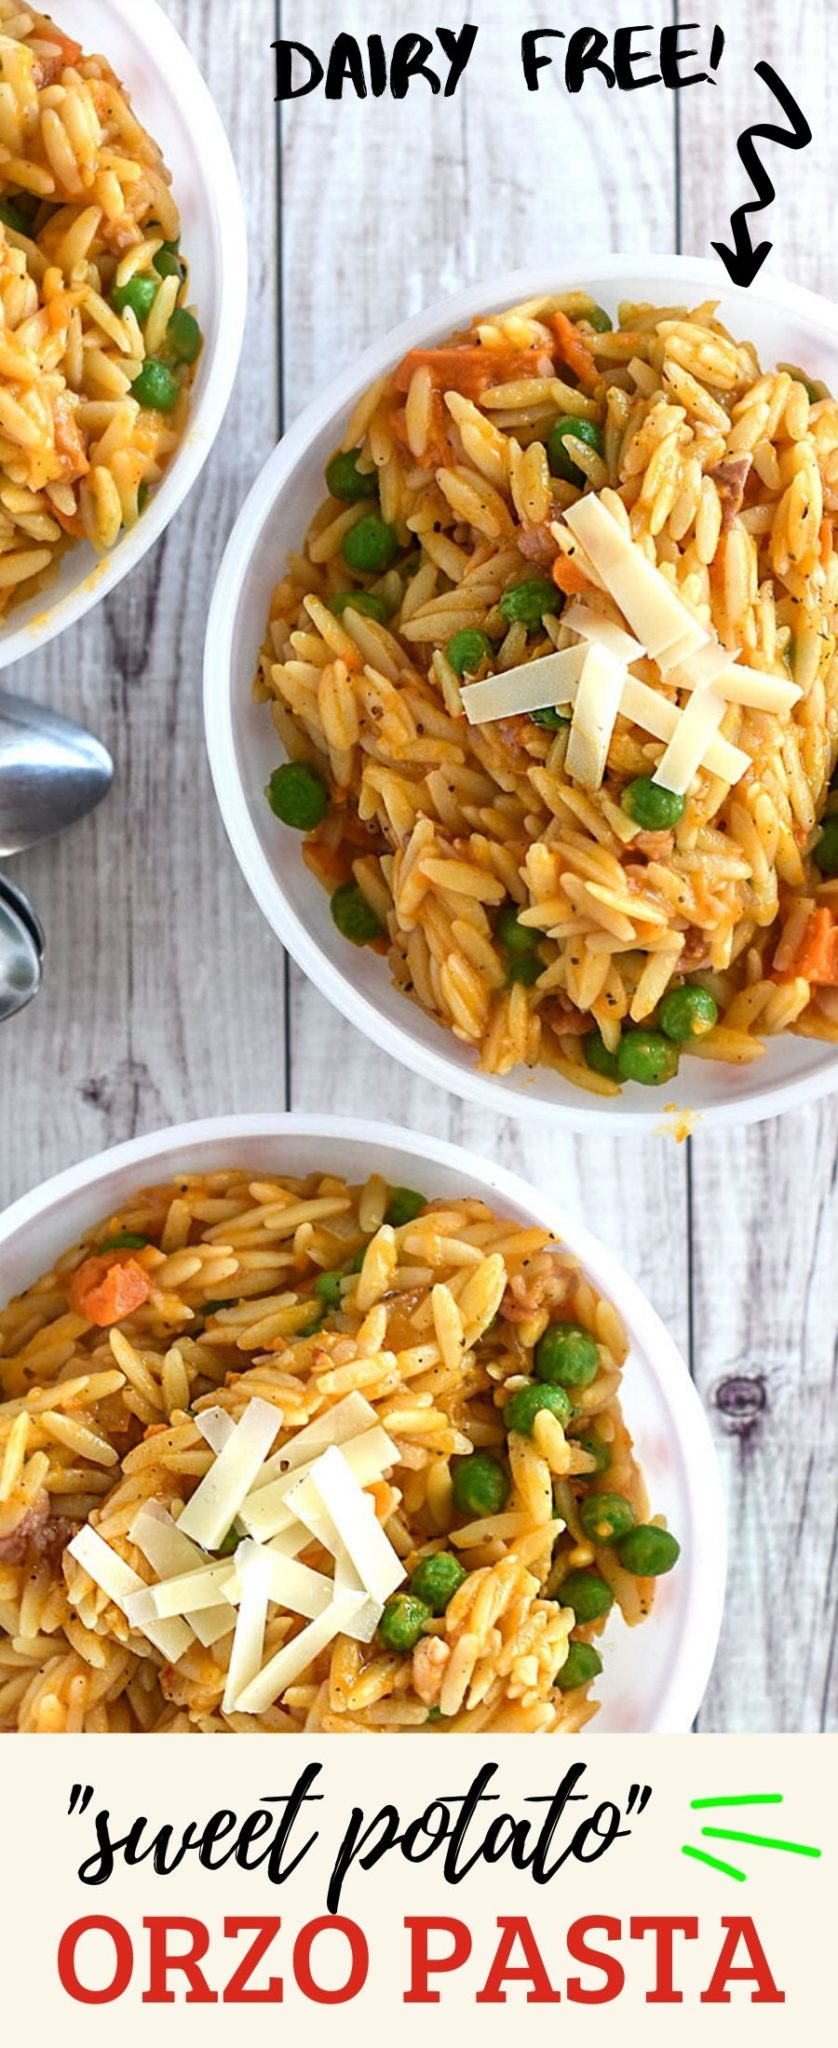 Creamy Sweet Potato Orzo is dairy-free and delicious!